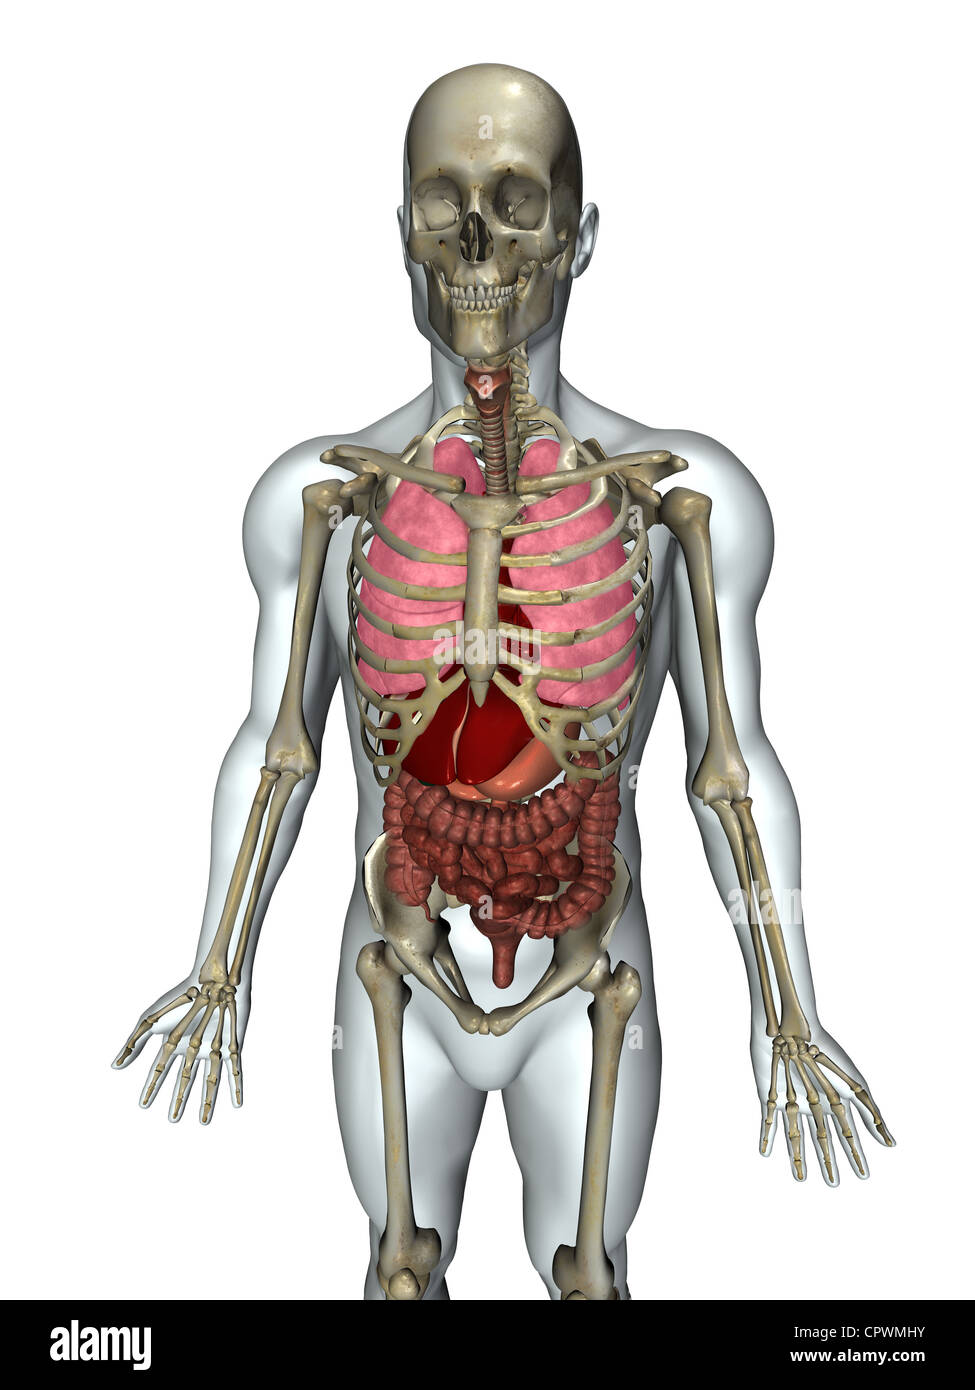 Anatomical illustration of the human body showing the major organ anatomical illustration of the human body showing the major organ systems ccuart Image collections